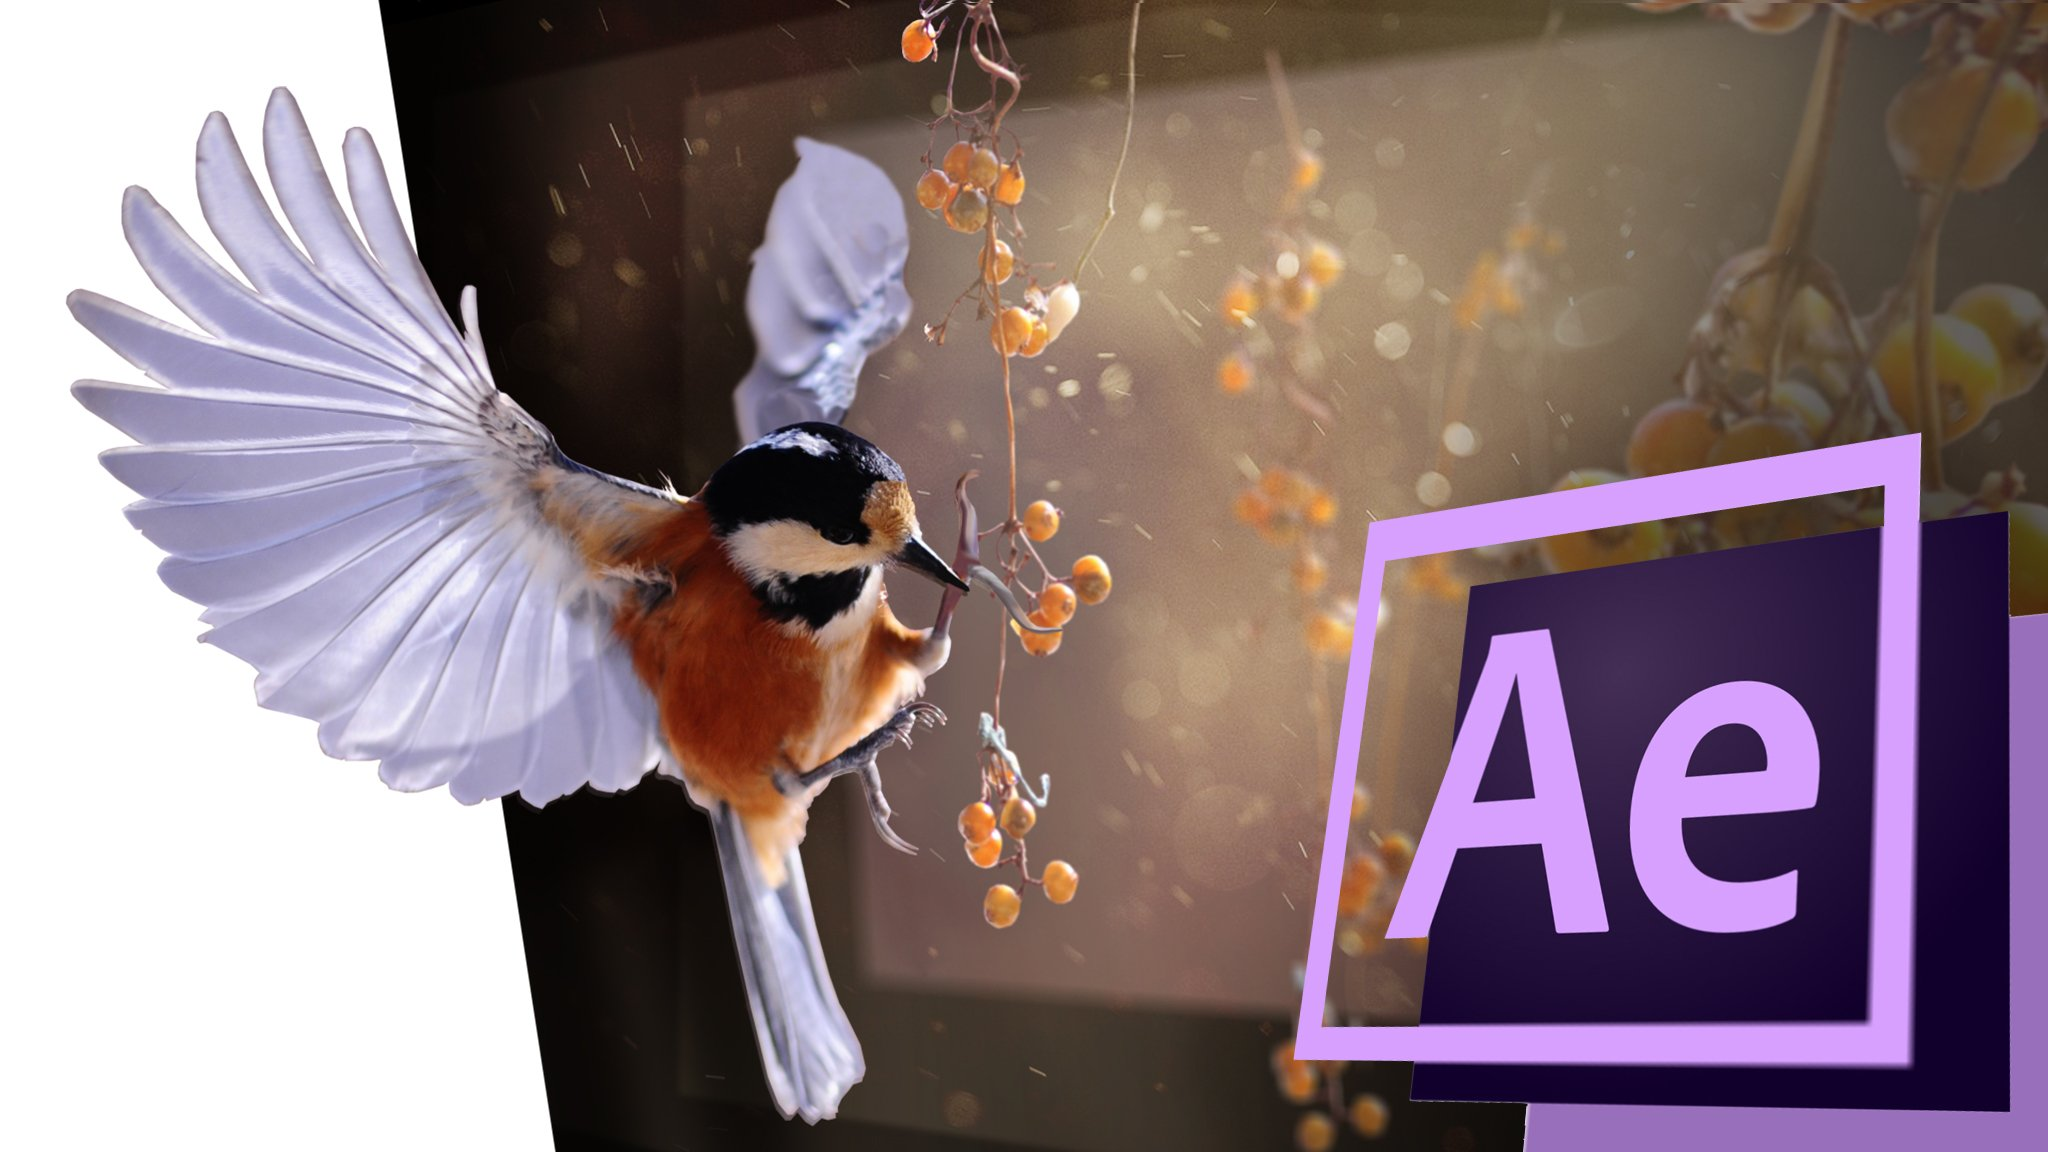 Turn a 2d photo into a 3d animation with After Effects!